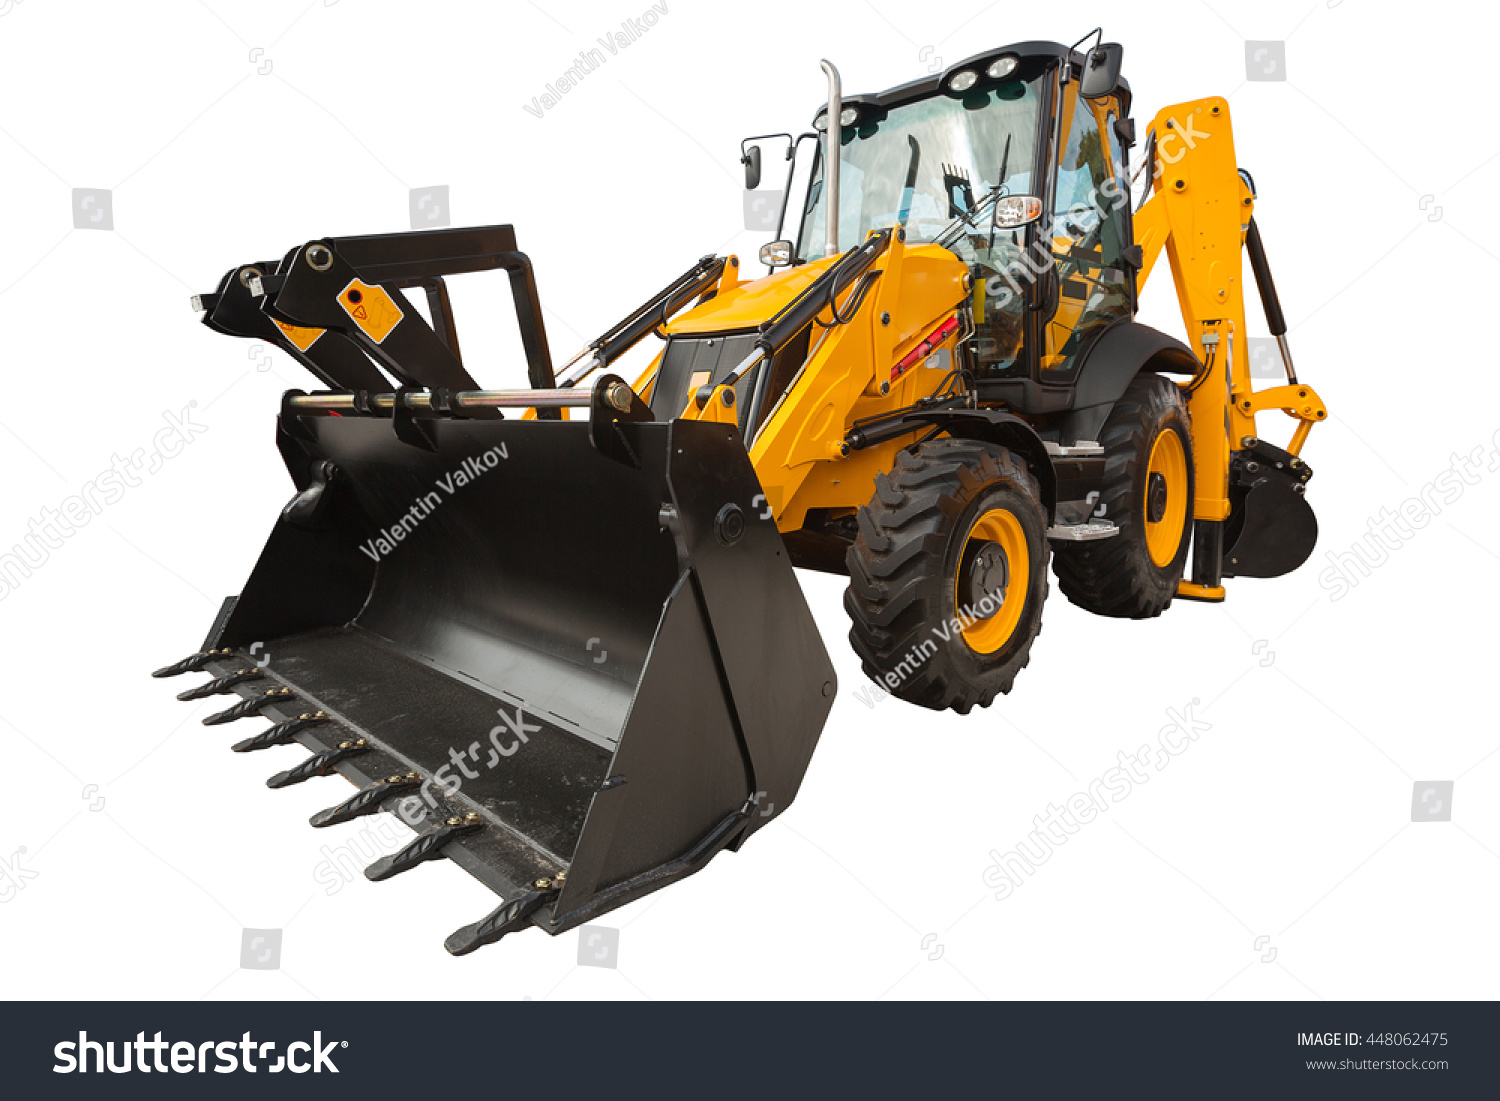 New modern excavator loader with clipping path isolated over white background